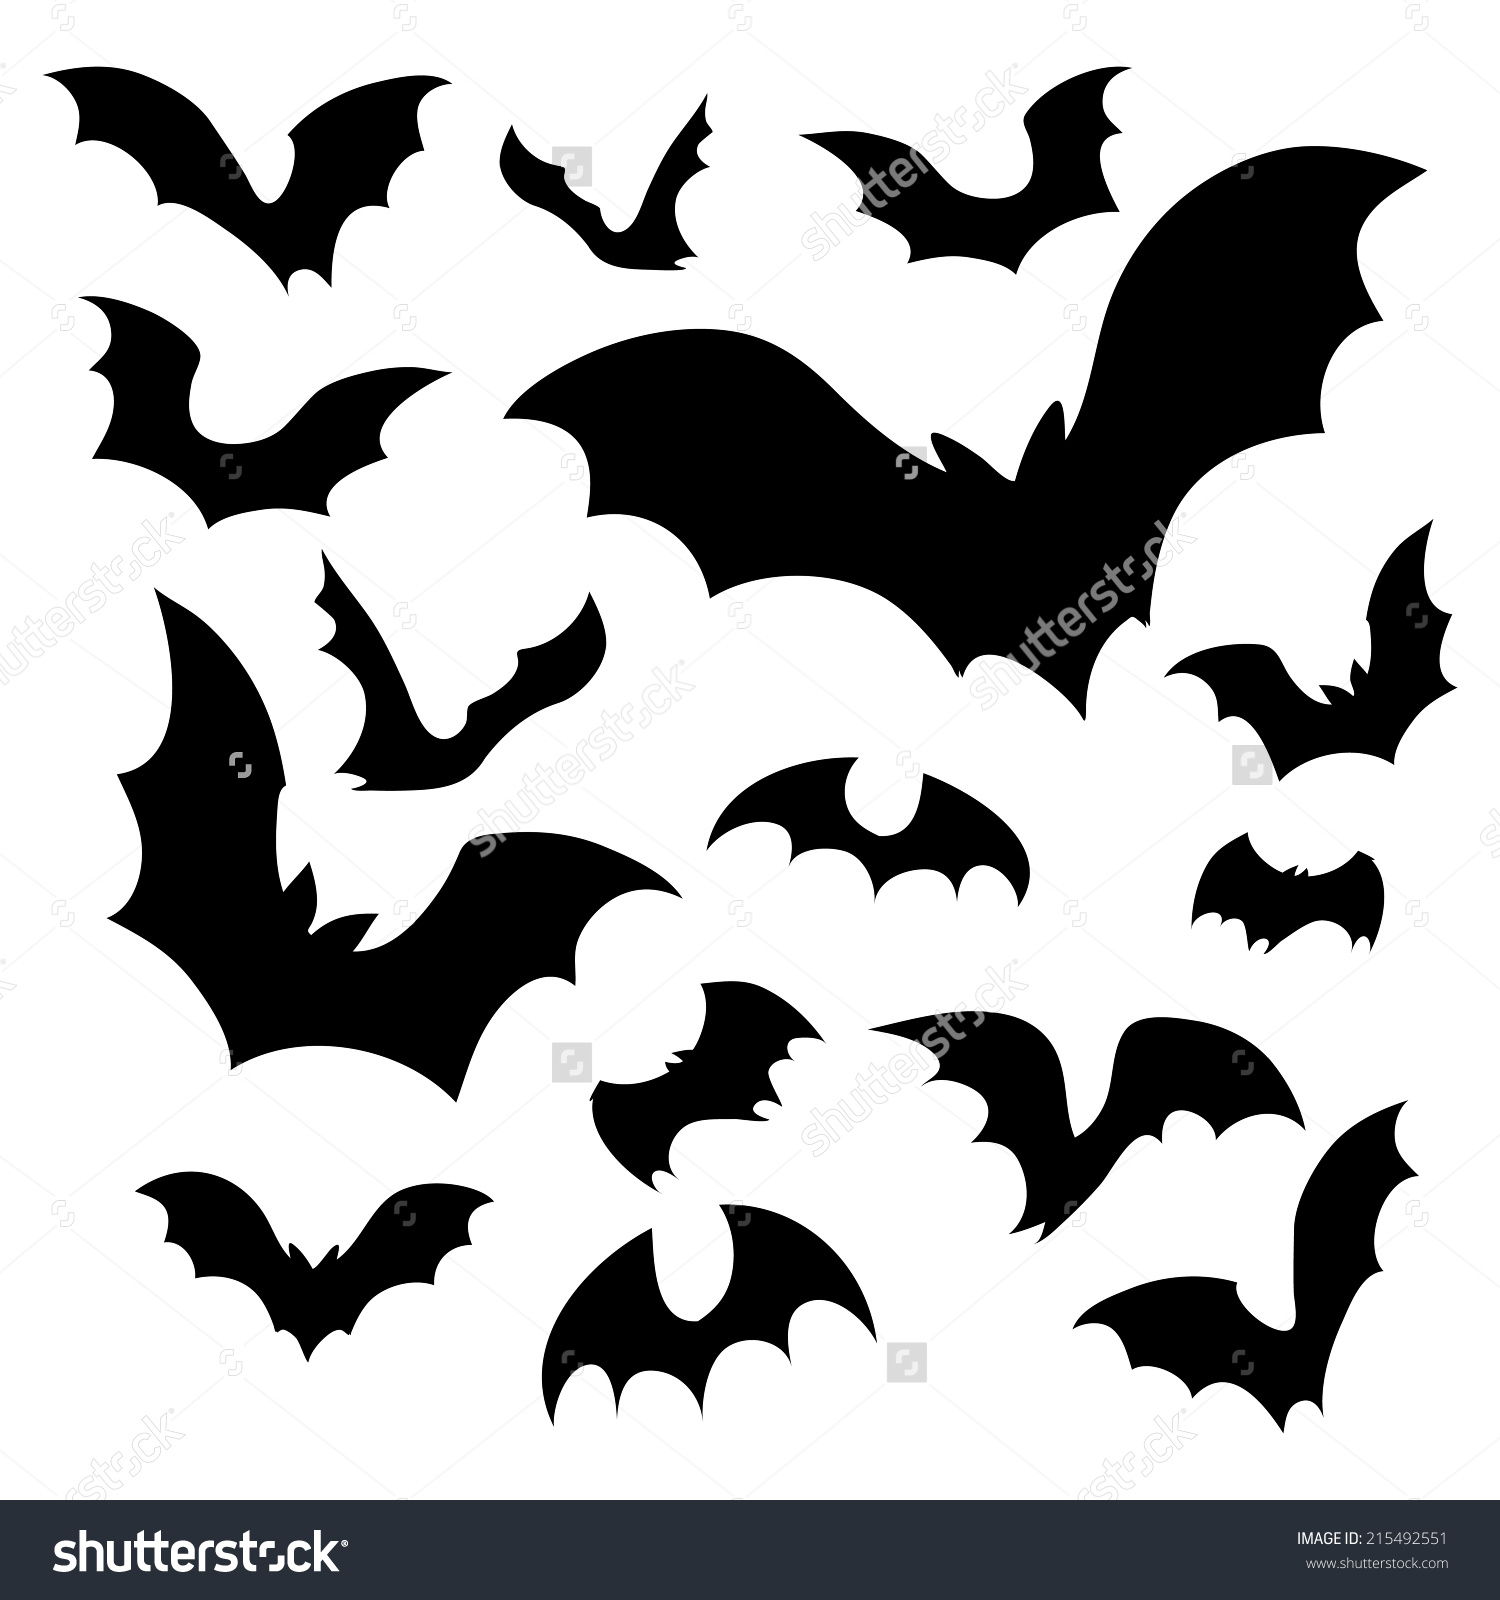 Big Set Black Silhouettes Bats Vector Stock Vector 215492551.